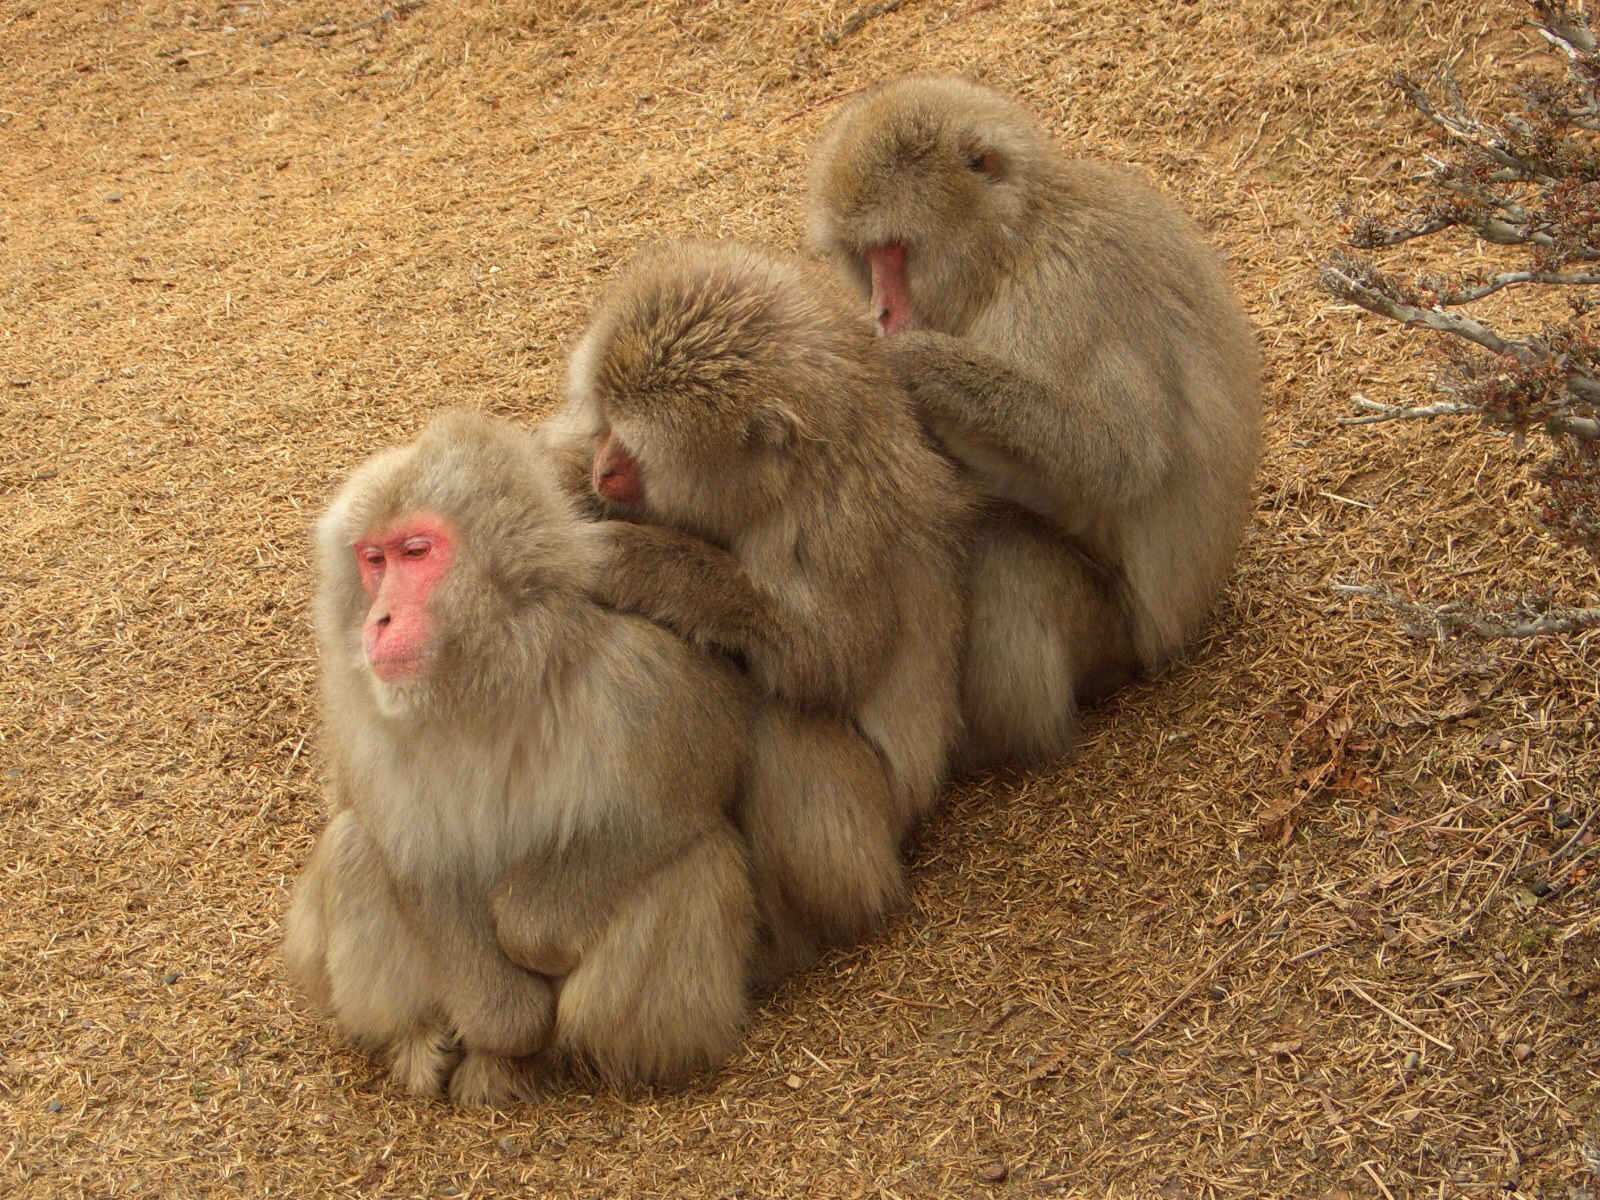 Japanese Snow Monkeys. (Japanese Macaque) | PARENTS ALLIANCE OF PRINCE GEORGE'S COUNTY, MARYLAND - photo#24